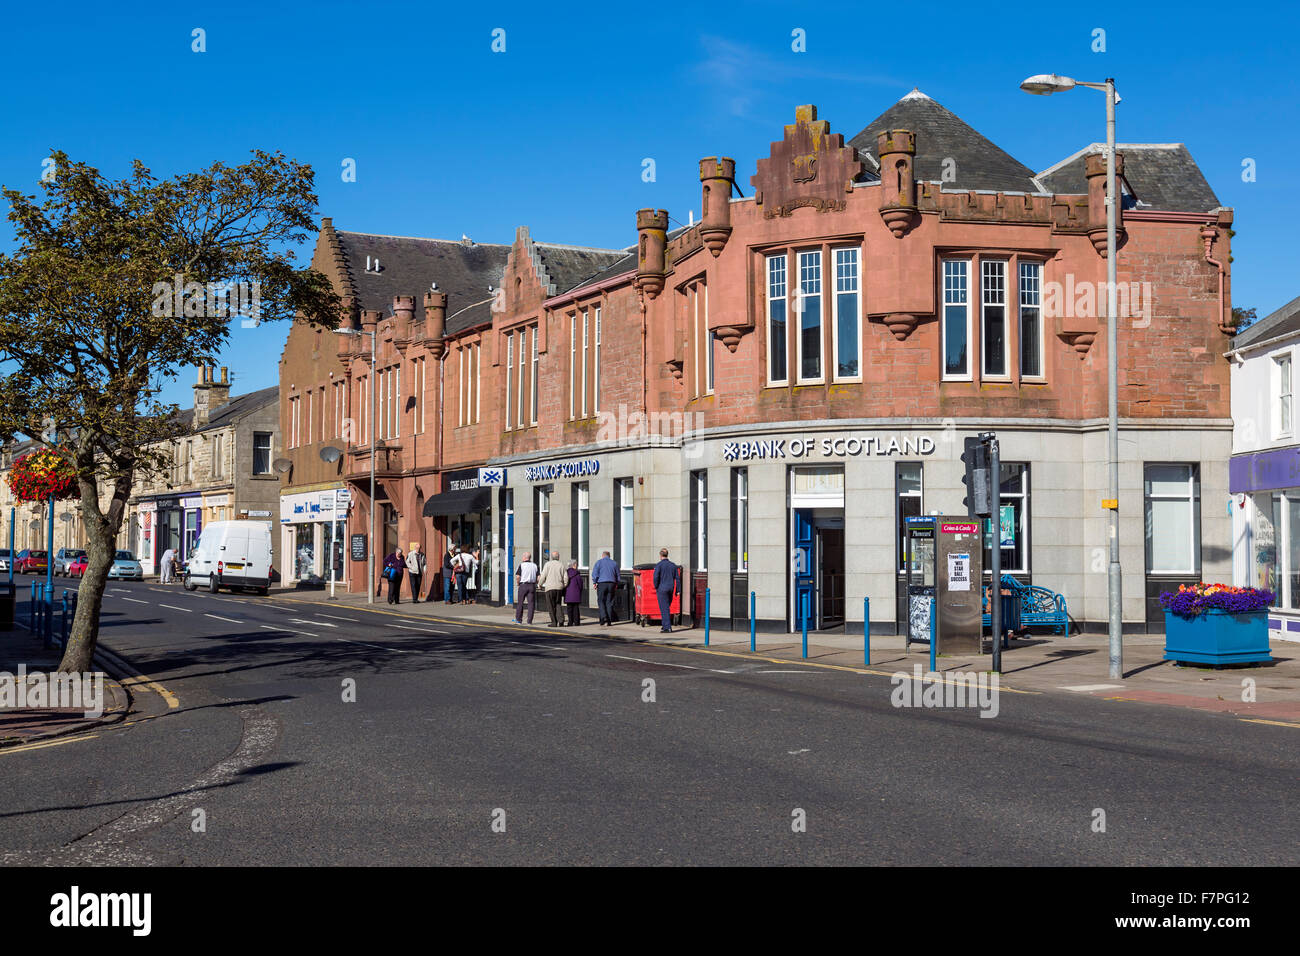 Templehill in the seaside town of Troon in Ayrshire, Scotland, UK - Stock Image